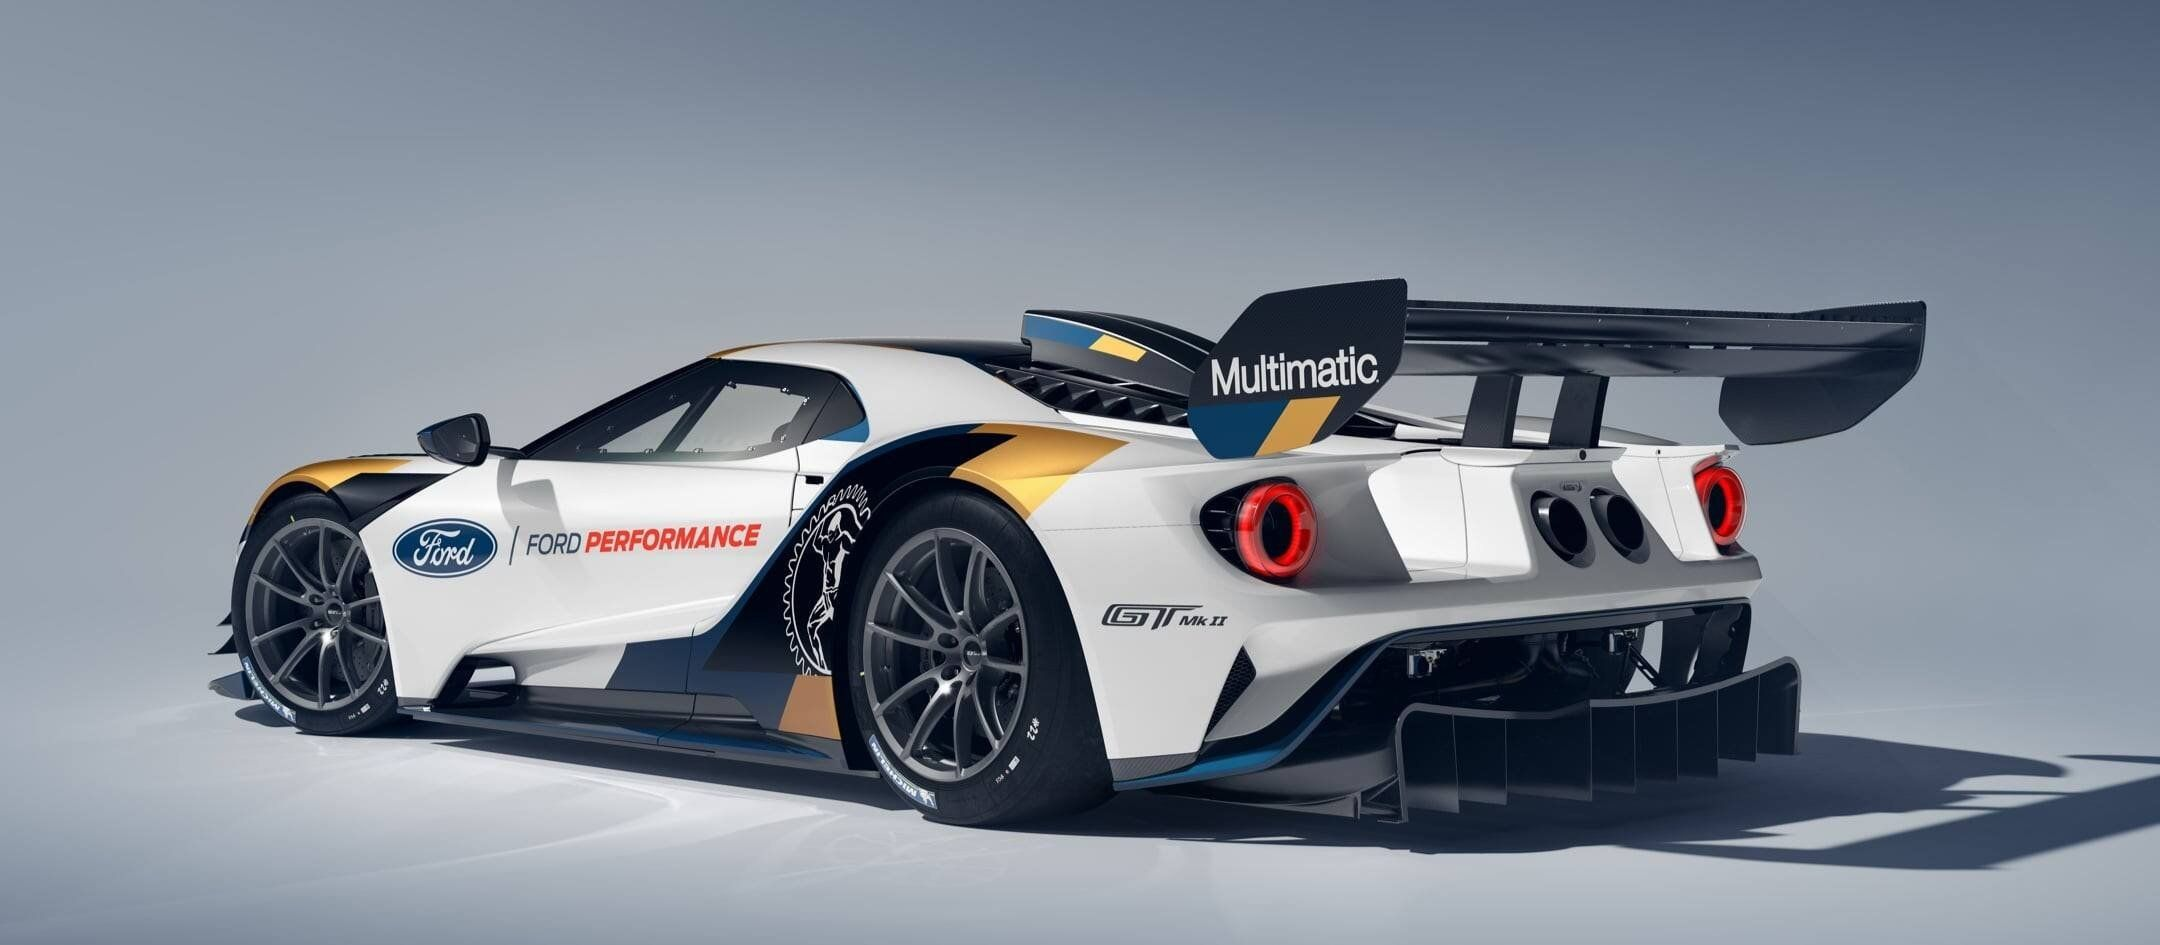 2020 Ford Gt Supercar In 2020 Ford Gt Ford Sports Cars Ford Sport